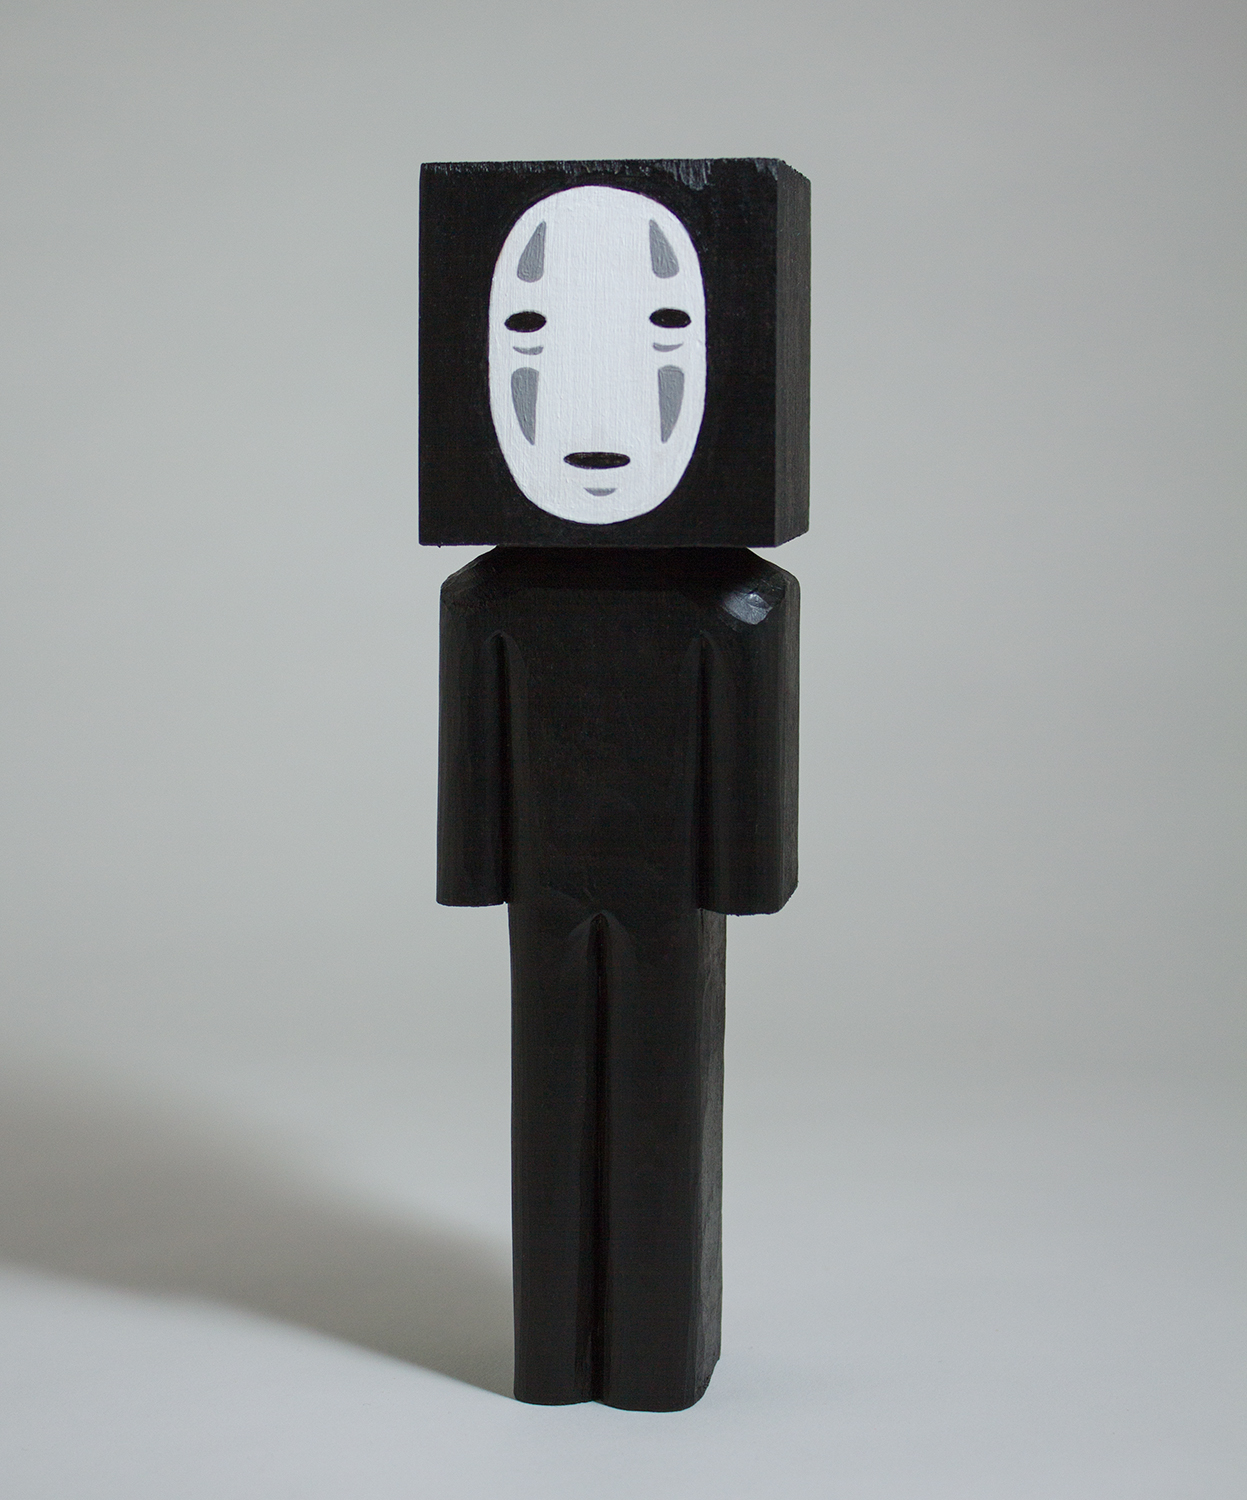 No Face  wood and acrylic 7.5 x 2 x 1.5 inches CSK 020G